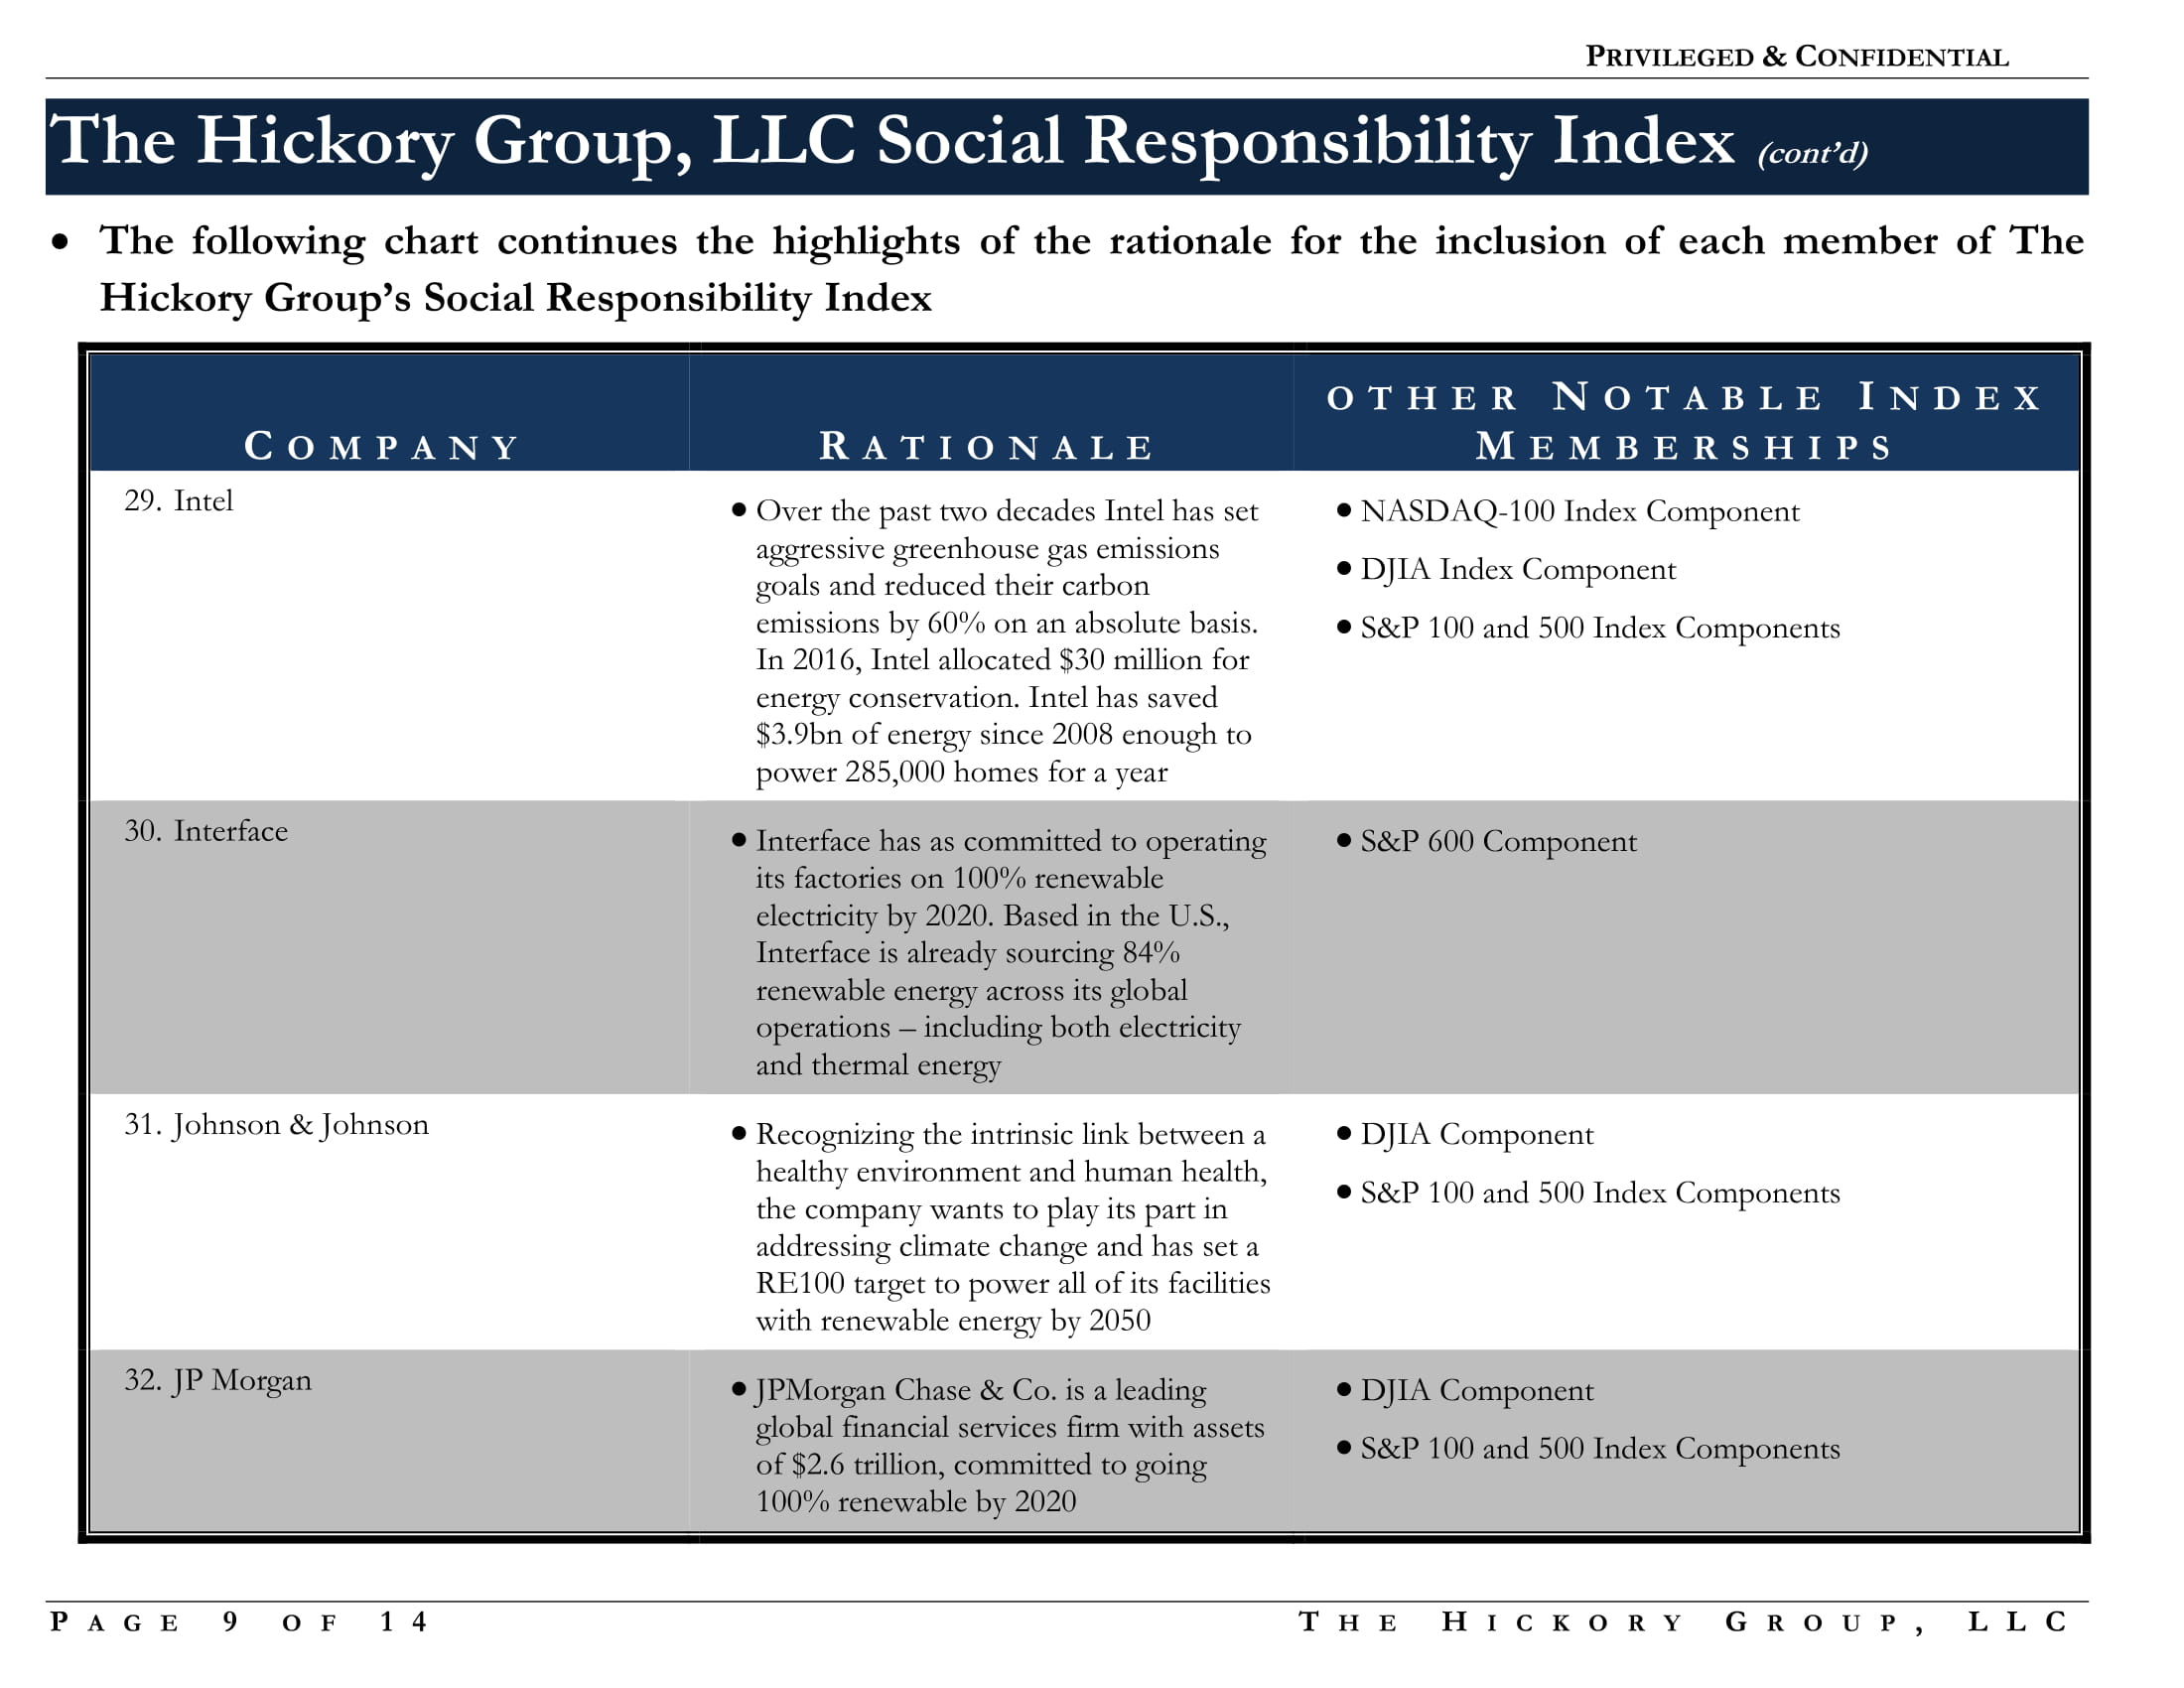 FINAL Social Responsibility Index  Notes and Rationale (7 October 2017) Privileged and Confidential-09.jpg